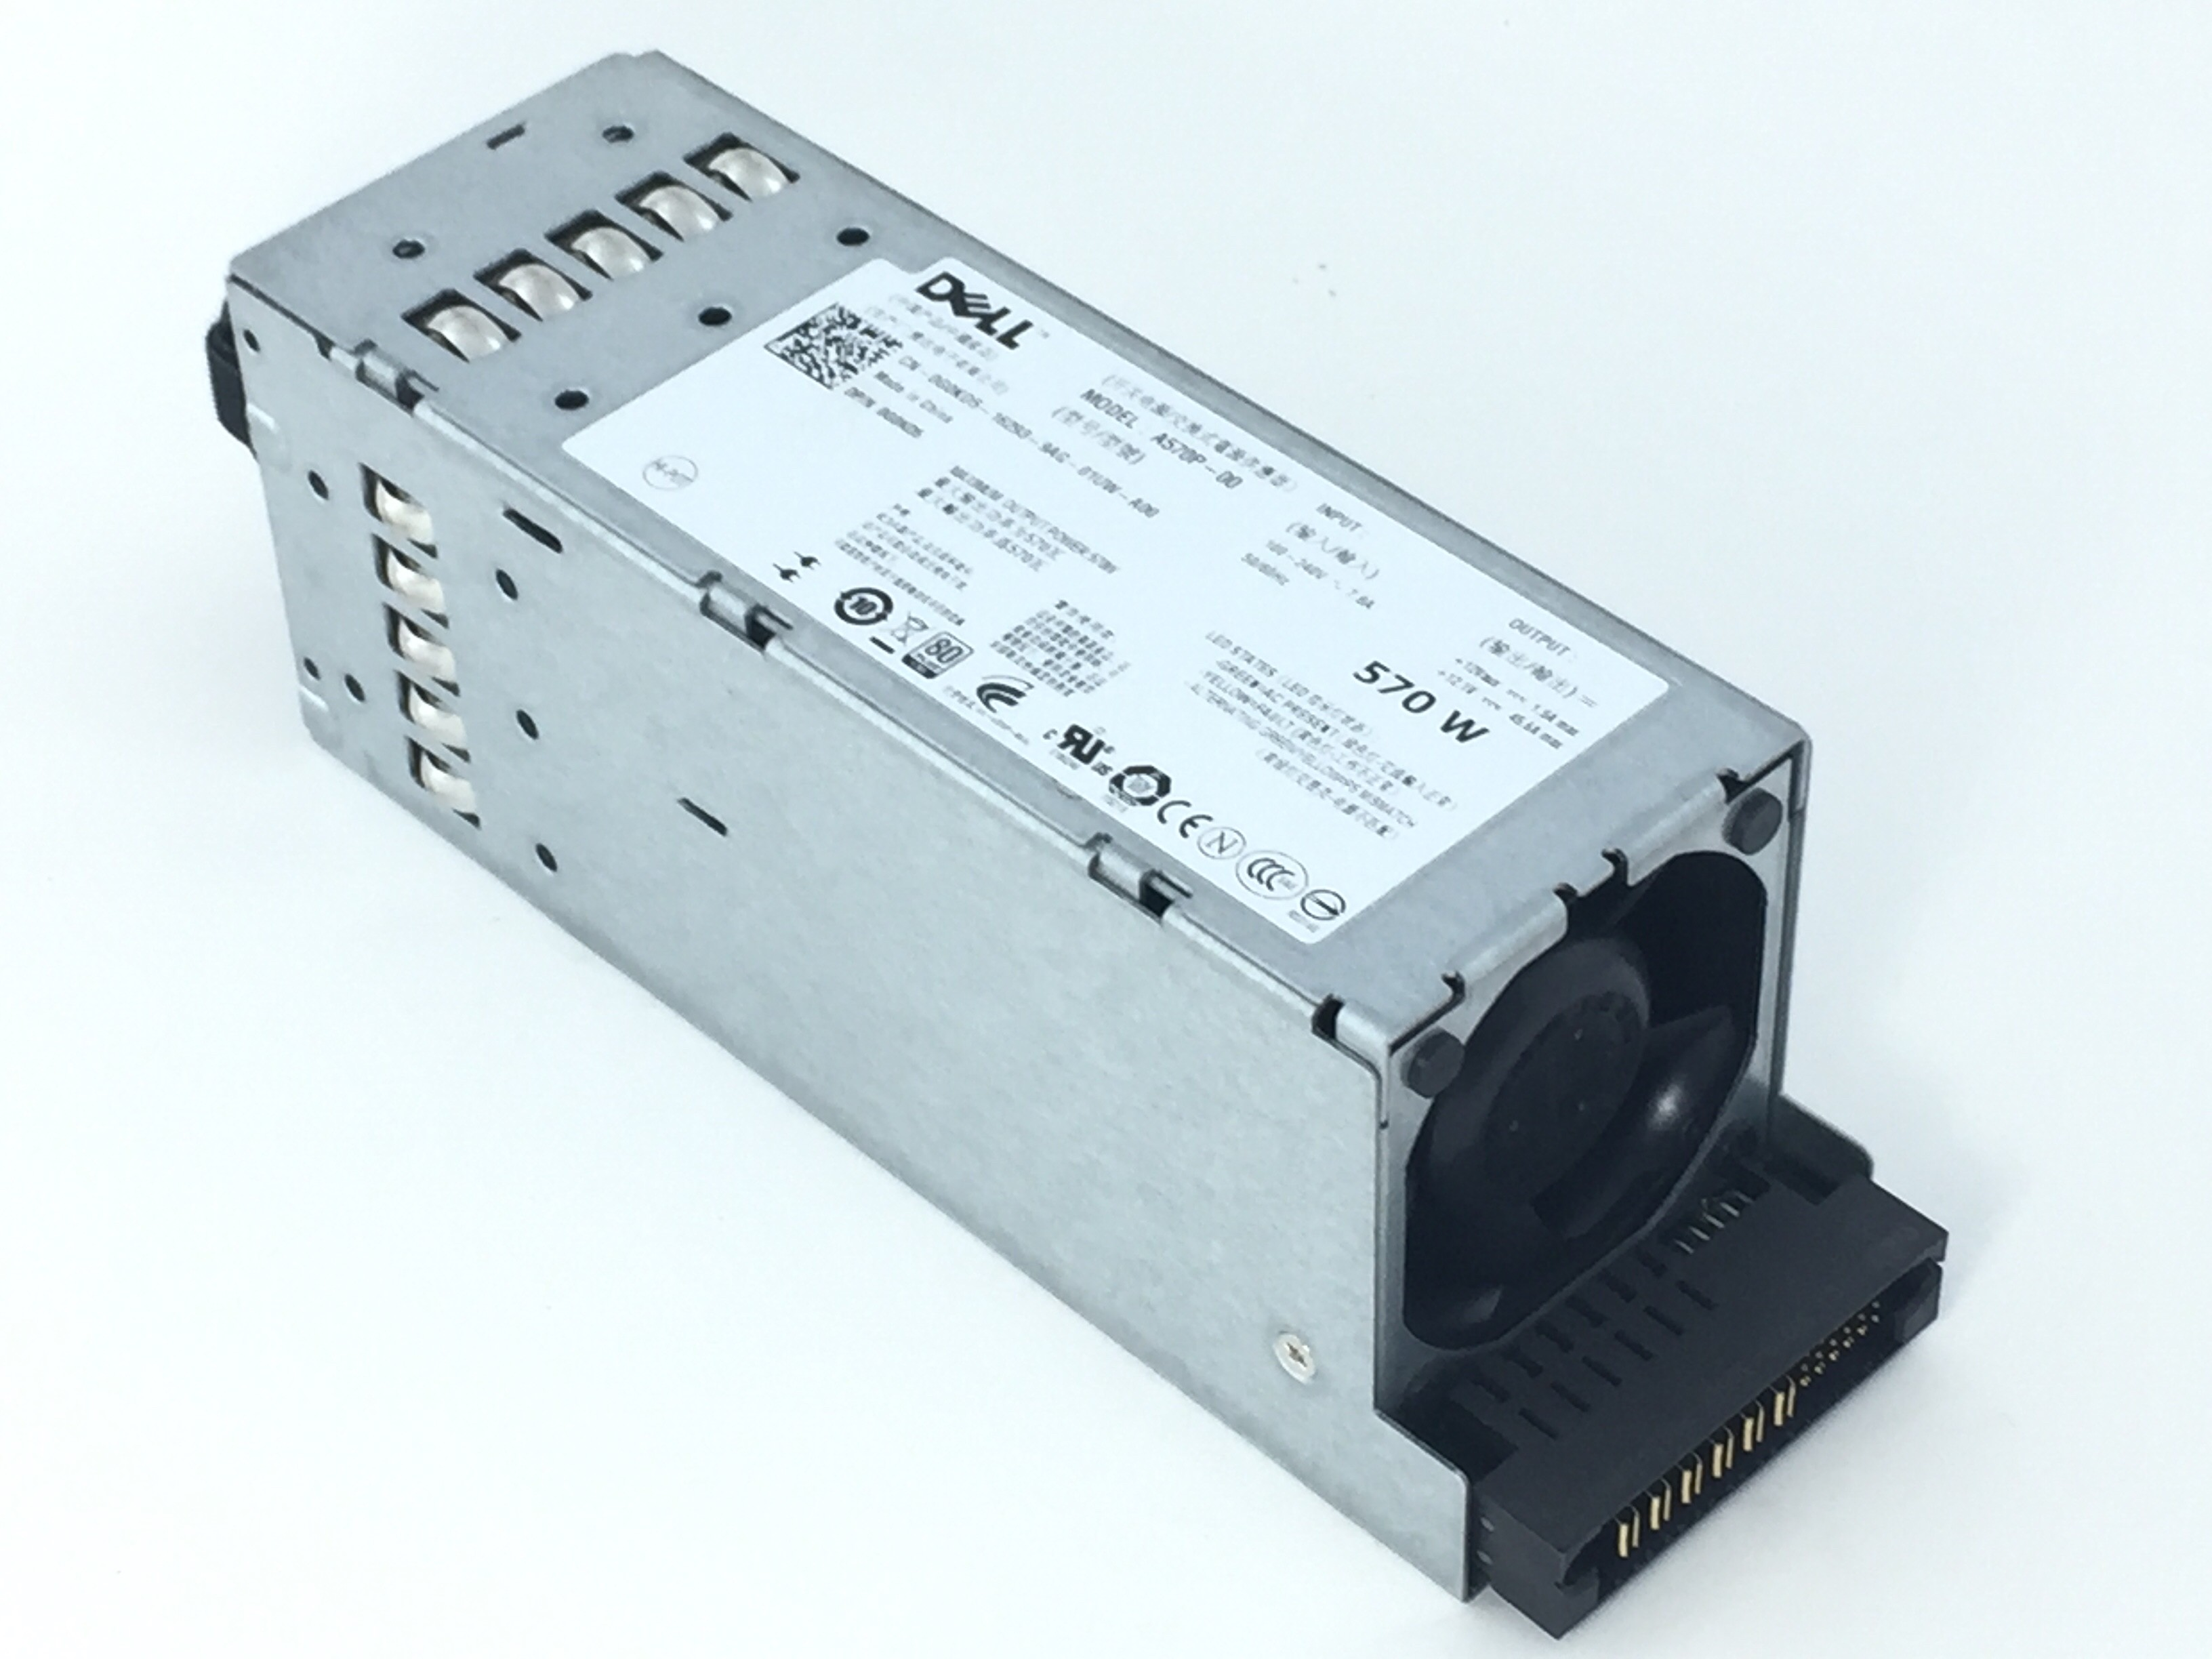 Dell PowerEdge R710 570W Power Supply (G0KD5)